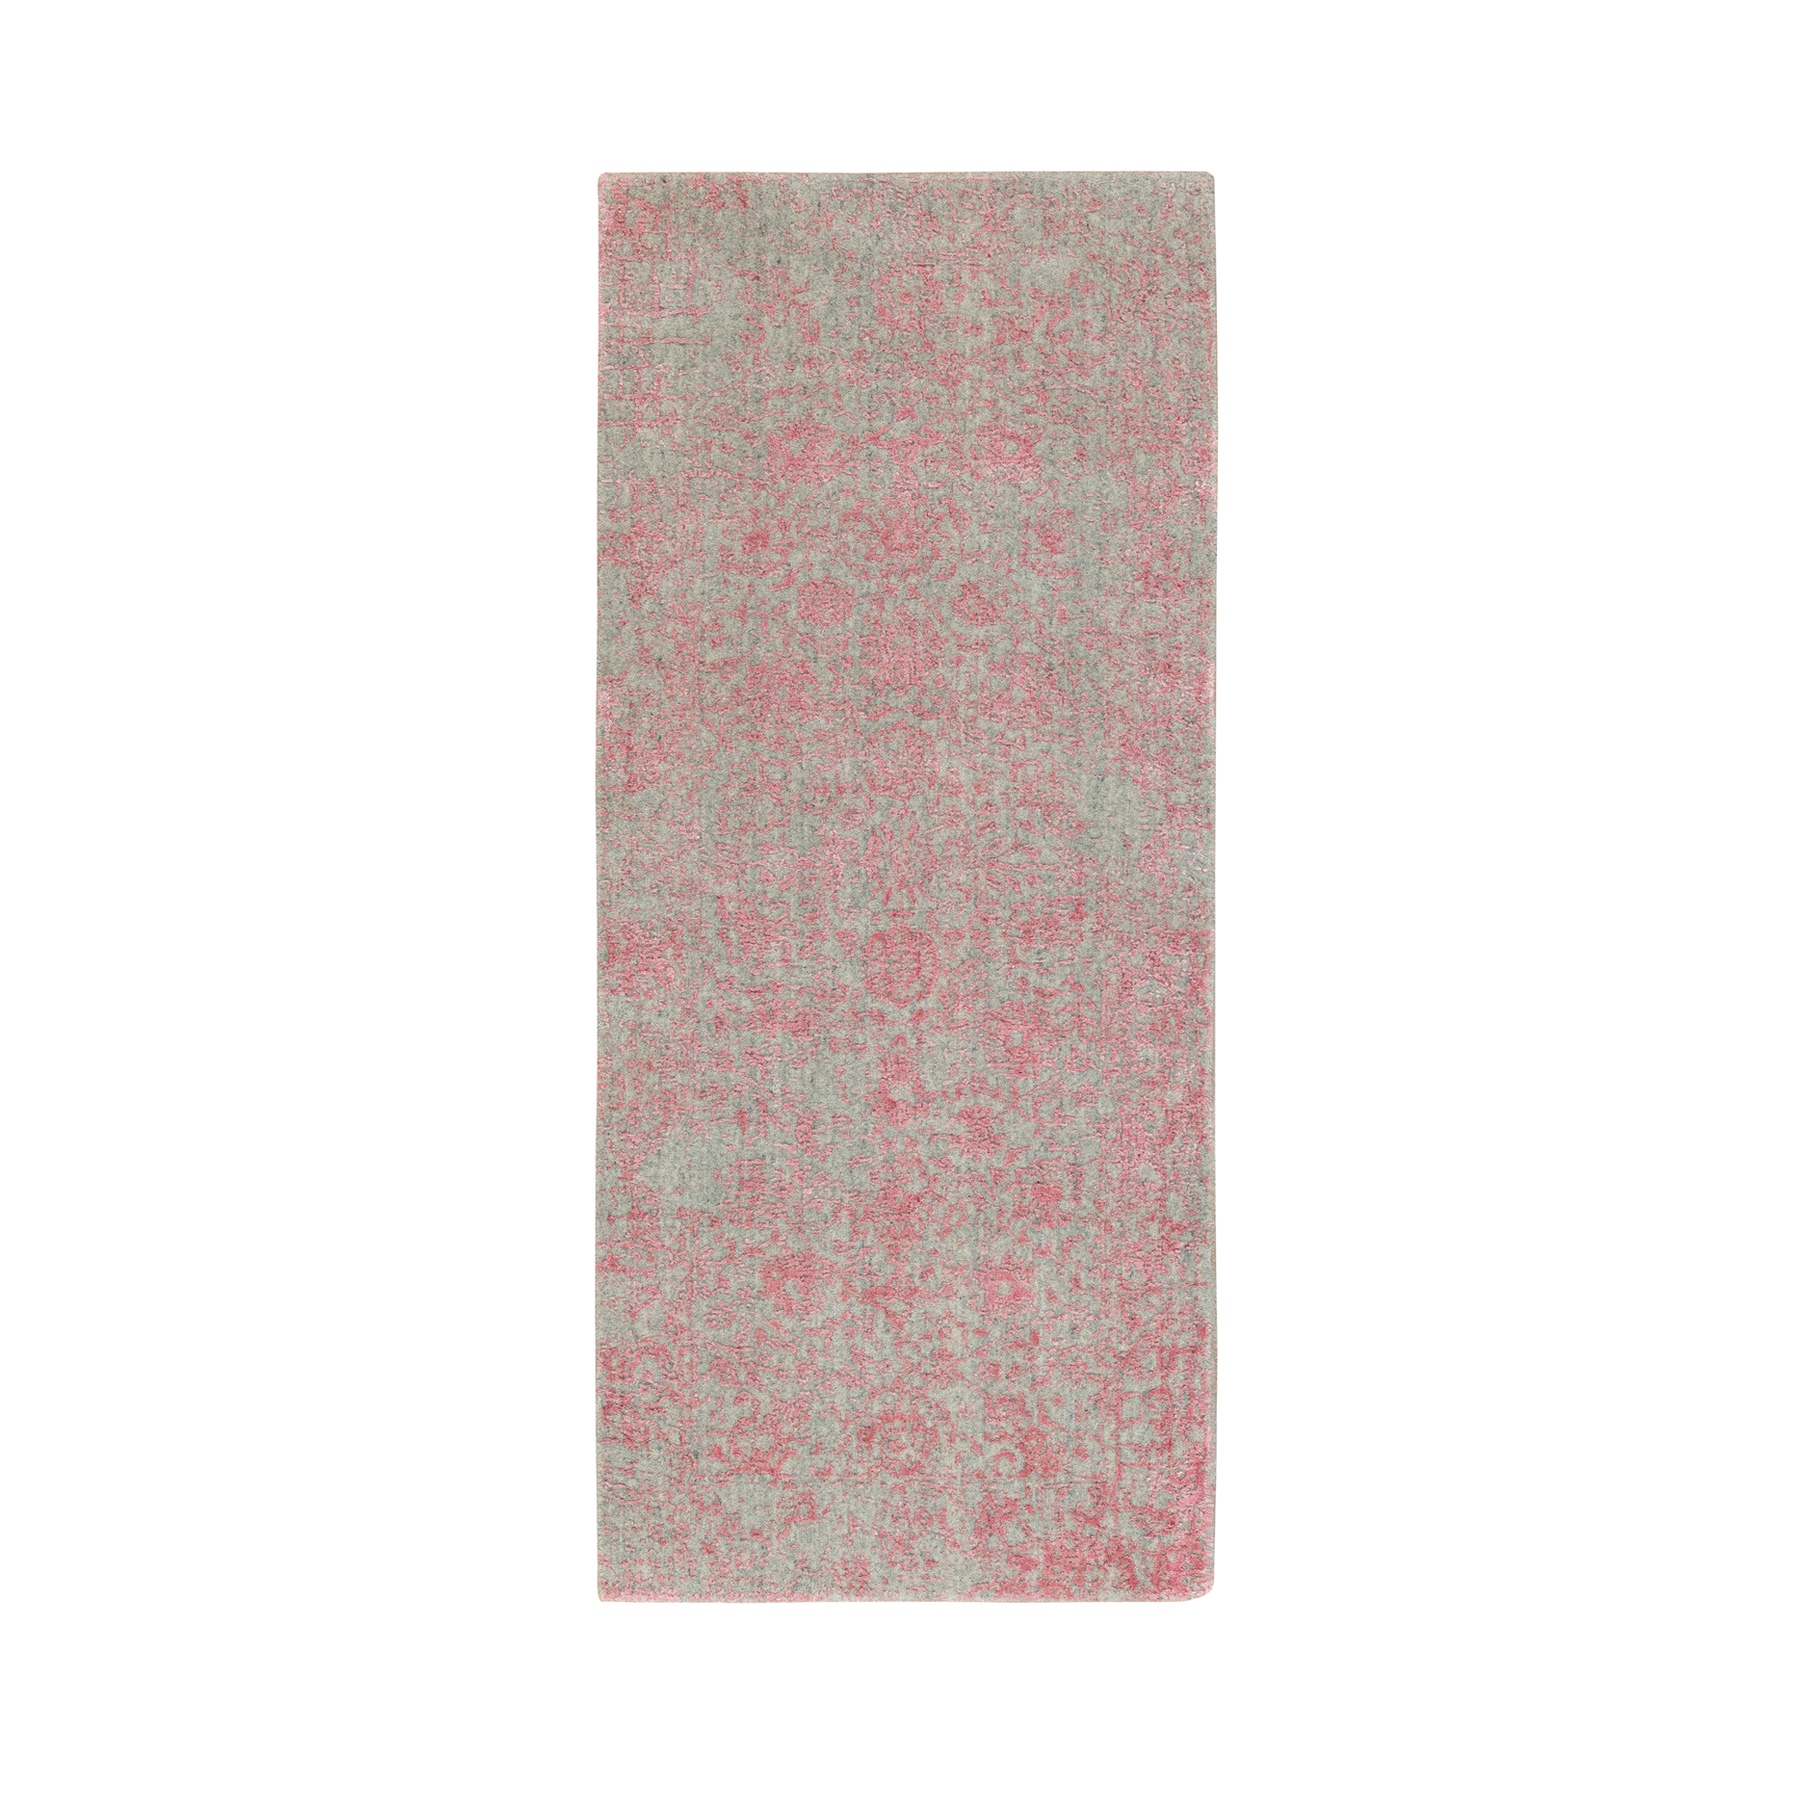 """2'6""""X6' Pink Wool And Art Silk Erased Persian Design Hand Loomed Jacquard Oriental Rug moae8e86"""